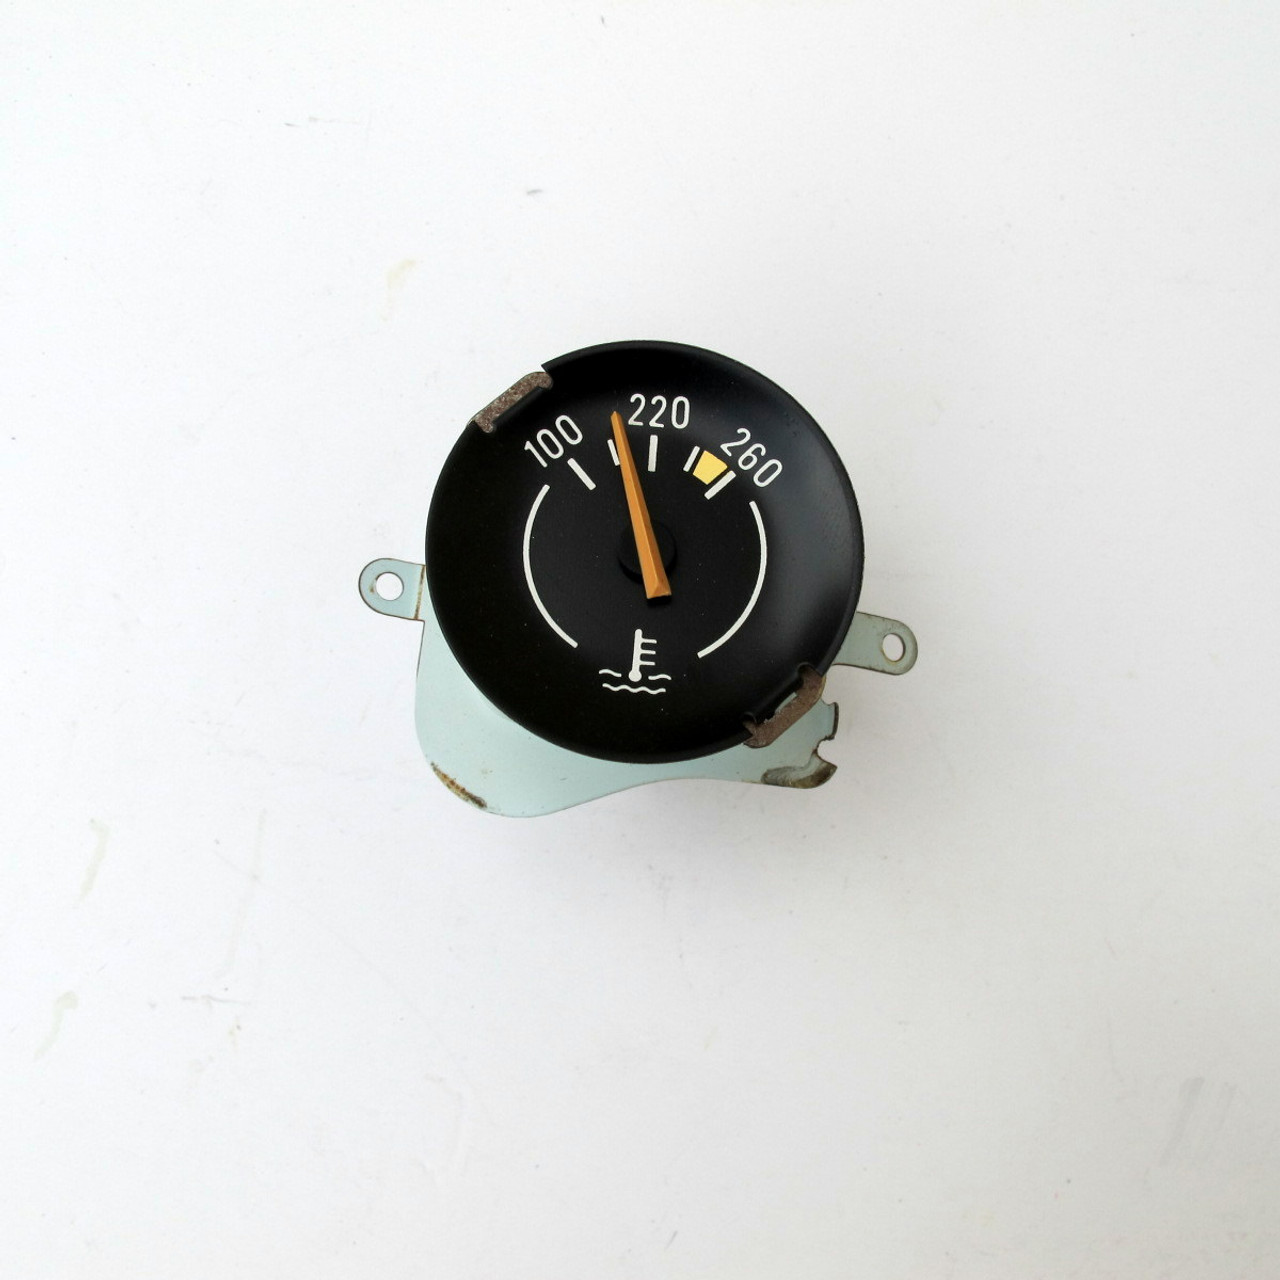 Early 70's Chevy 260 degree Water Temperature Gauge. OEM GM